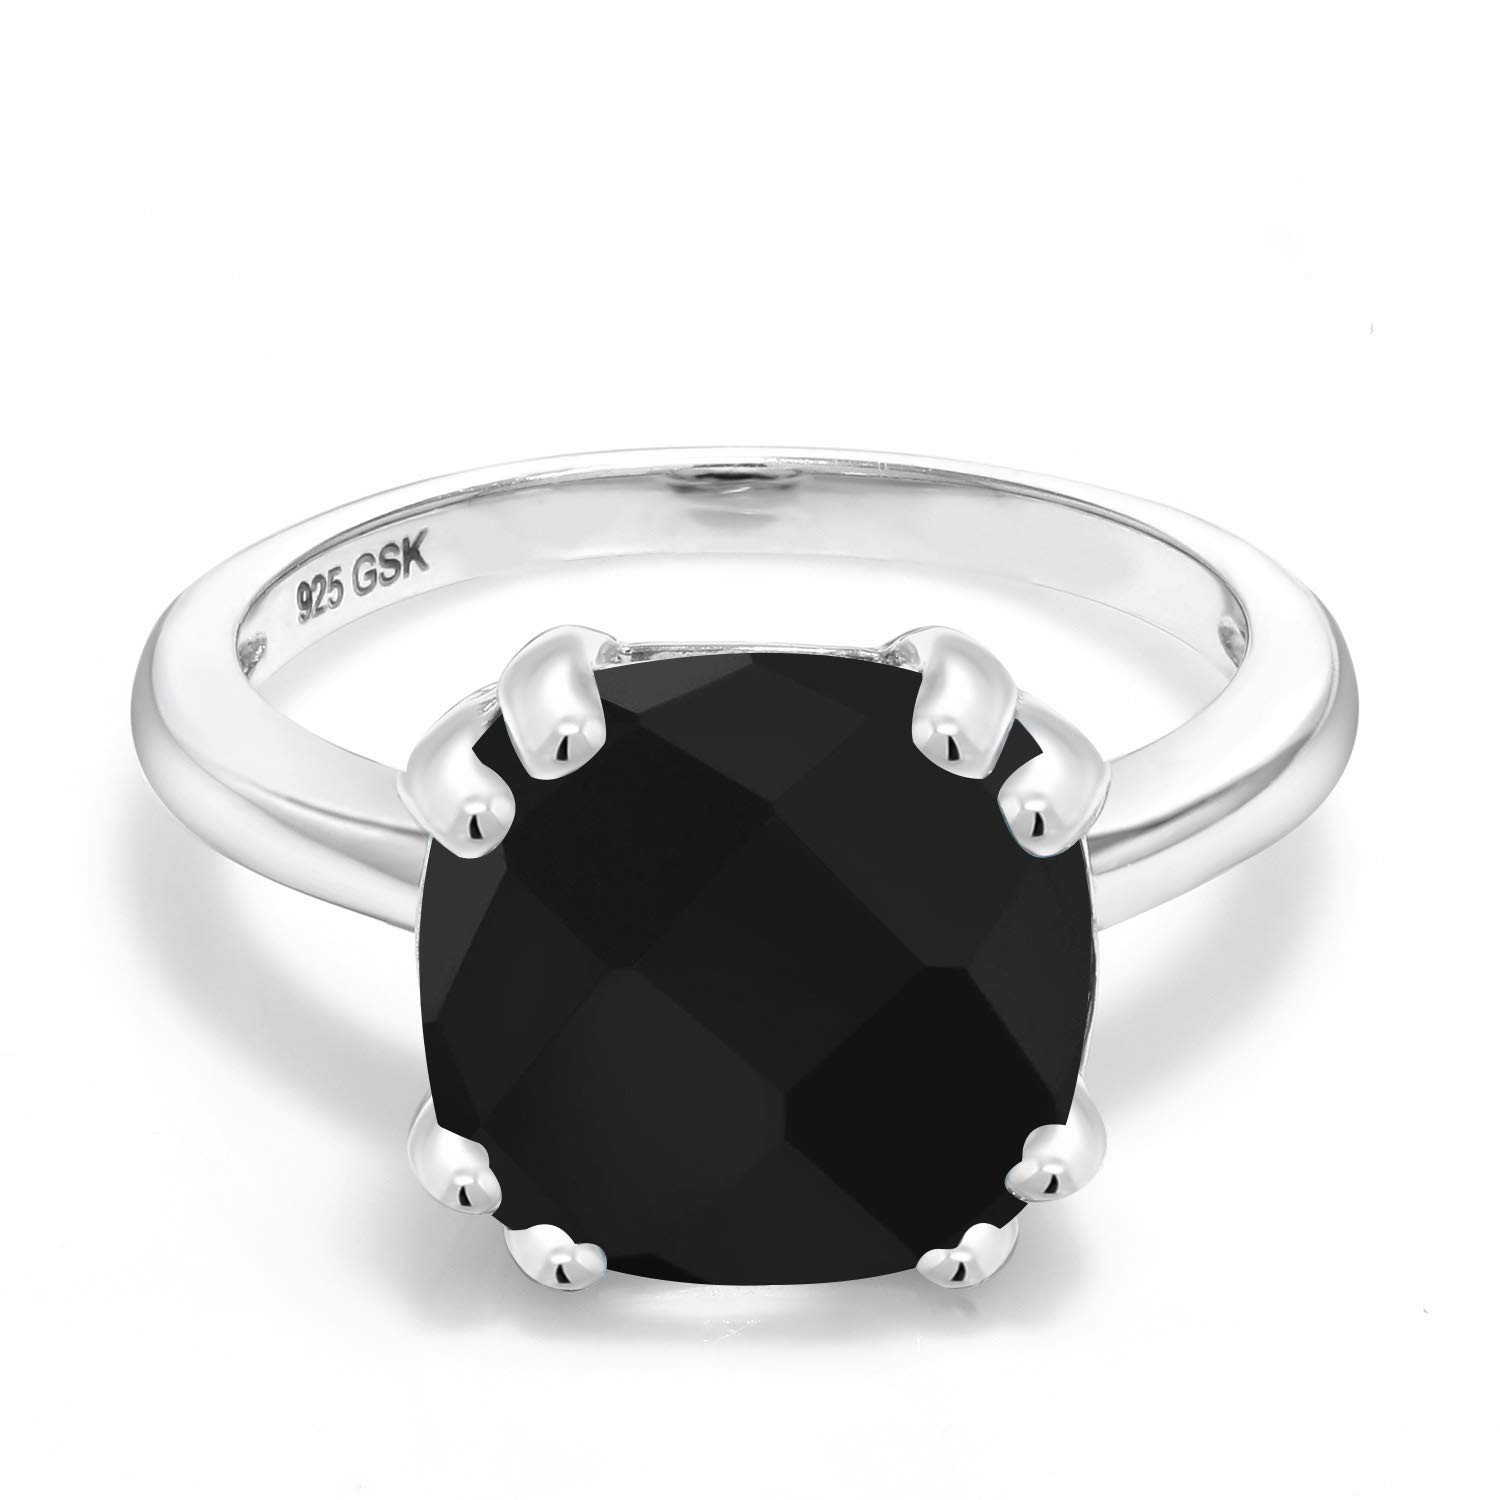 3.60 Cttw Cushion Checkerboard Gemstone Birthstone Available in size 5, 6, 7, 8, 9 Gem Stone King Black Onyx 925 Sterling Silver Womens Ring